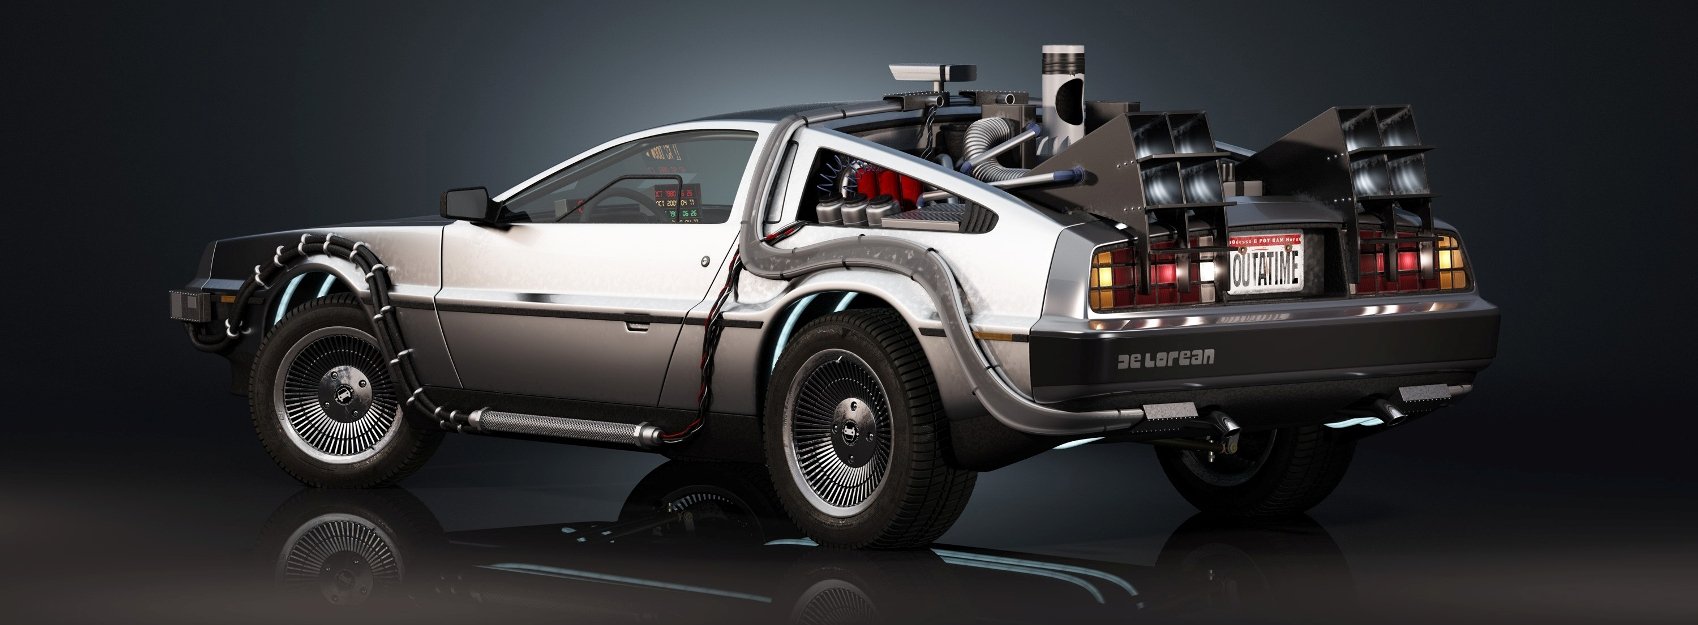 Supply Chain, Back to the Future!